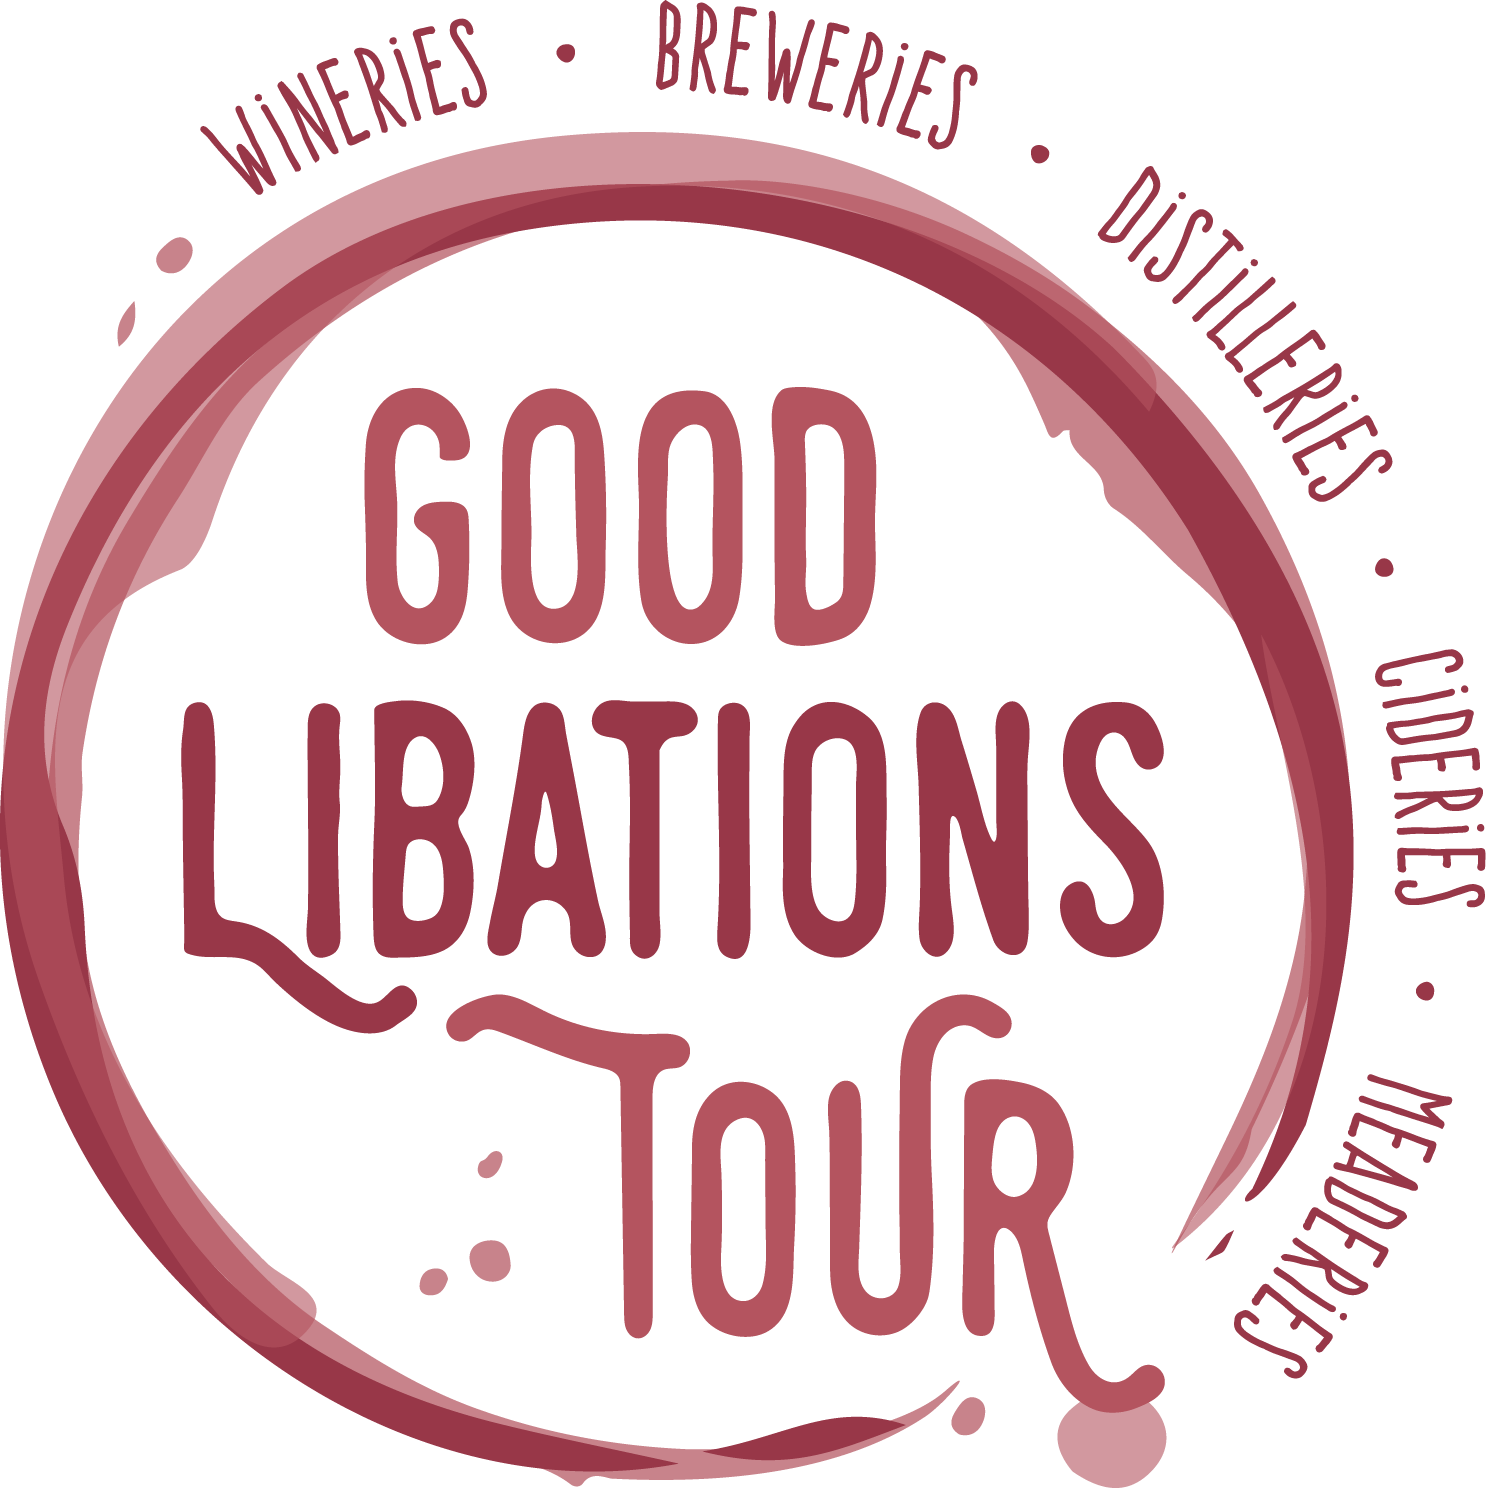 84-01-hw-libations-tour-logo-f-rgb-color.png